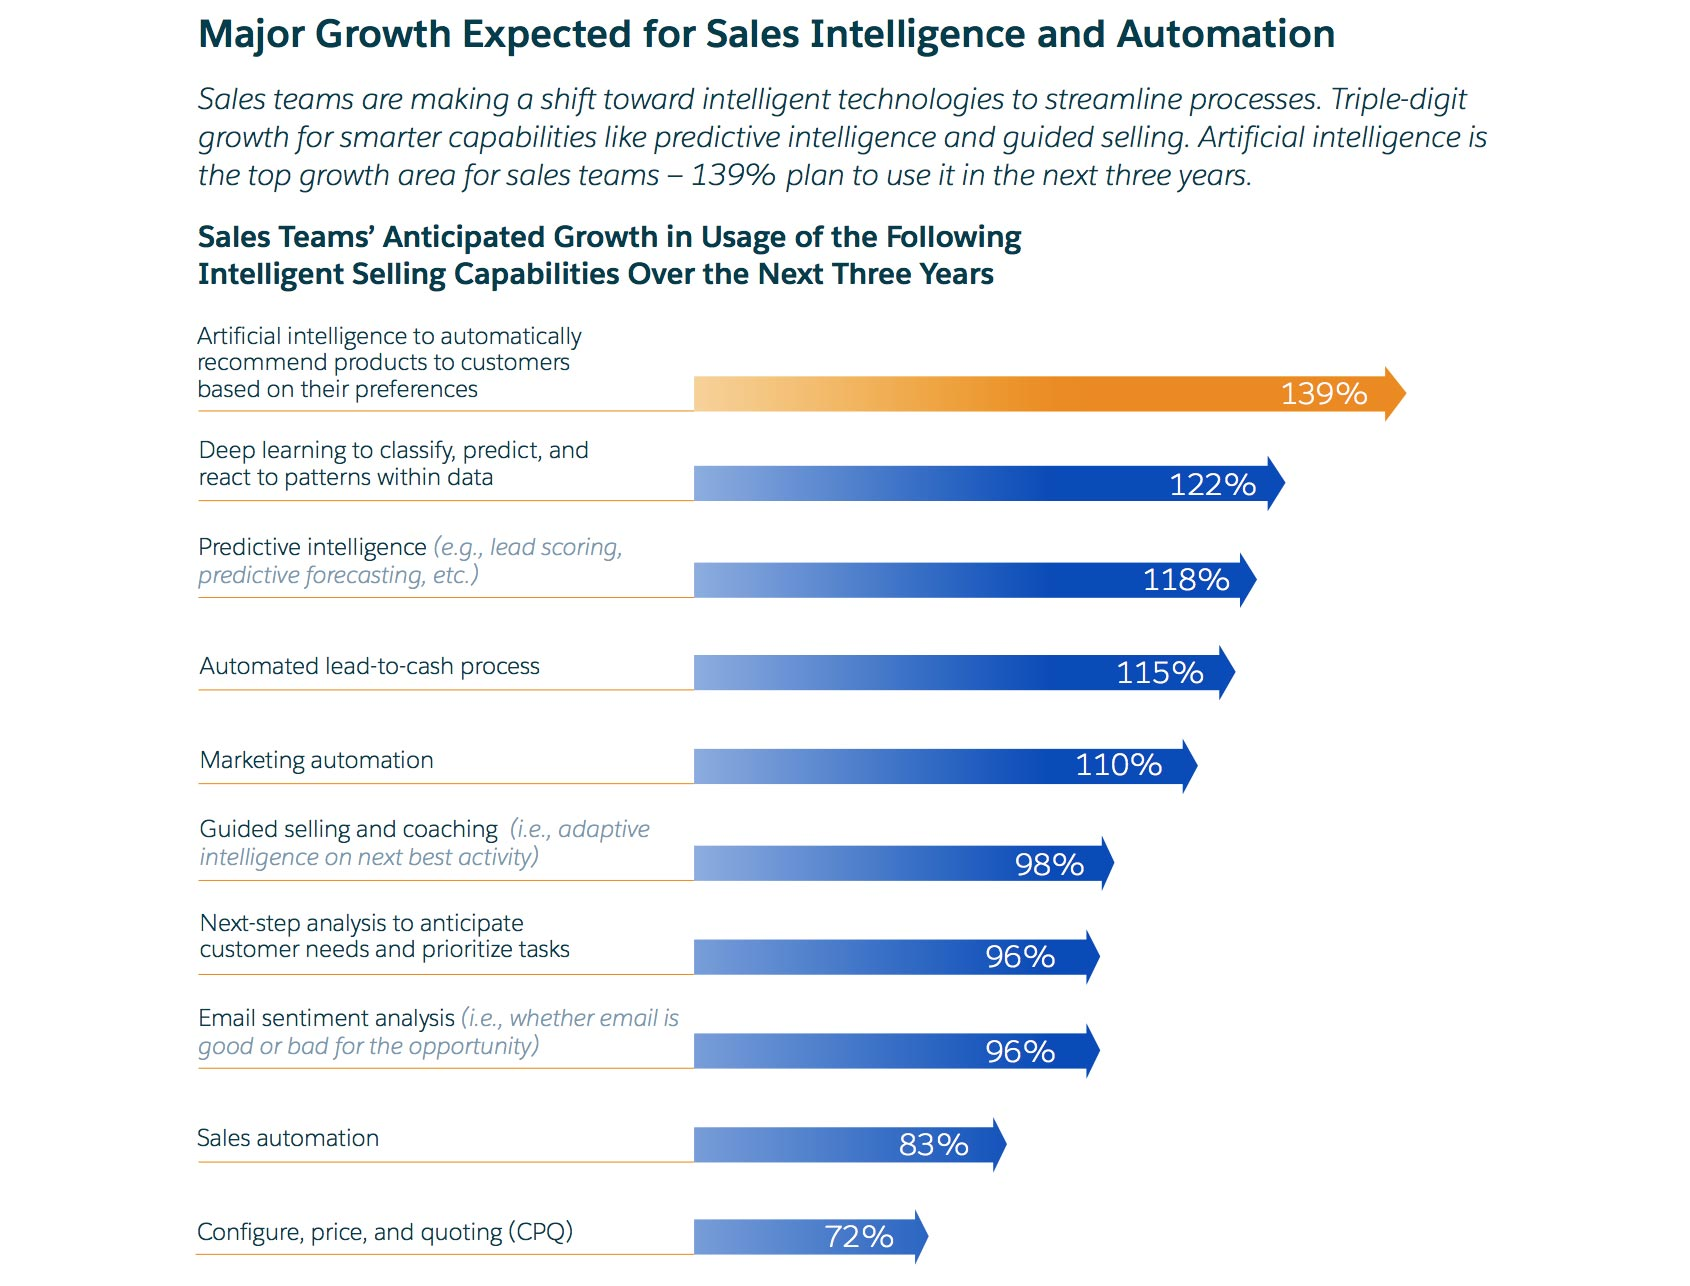 Major Growth Expected for Sales Intelligence and Automation